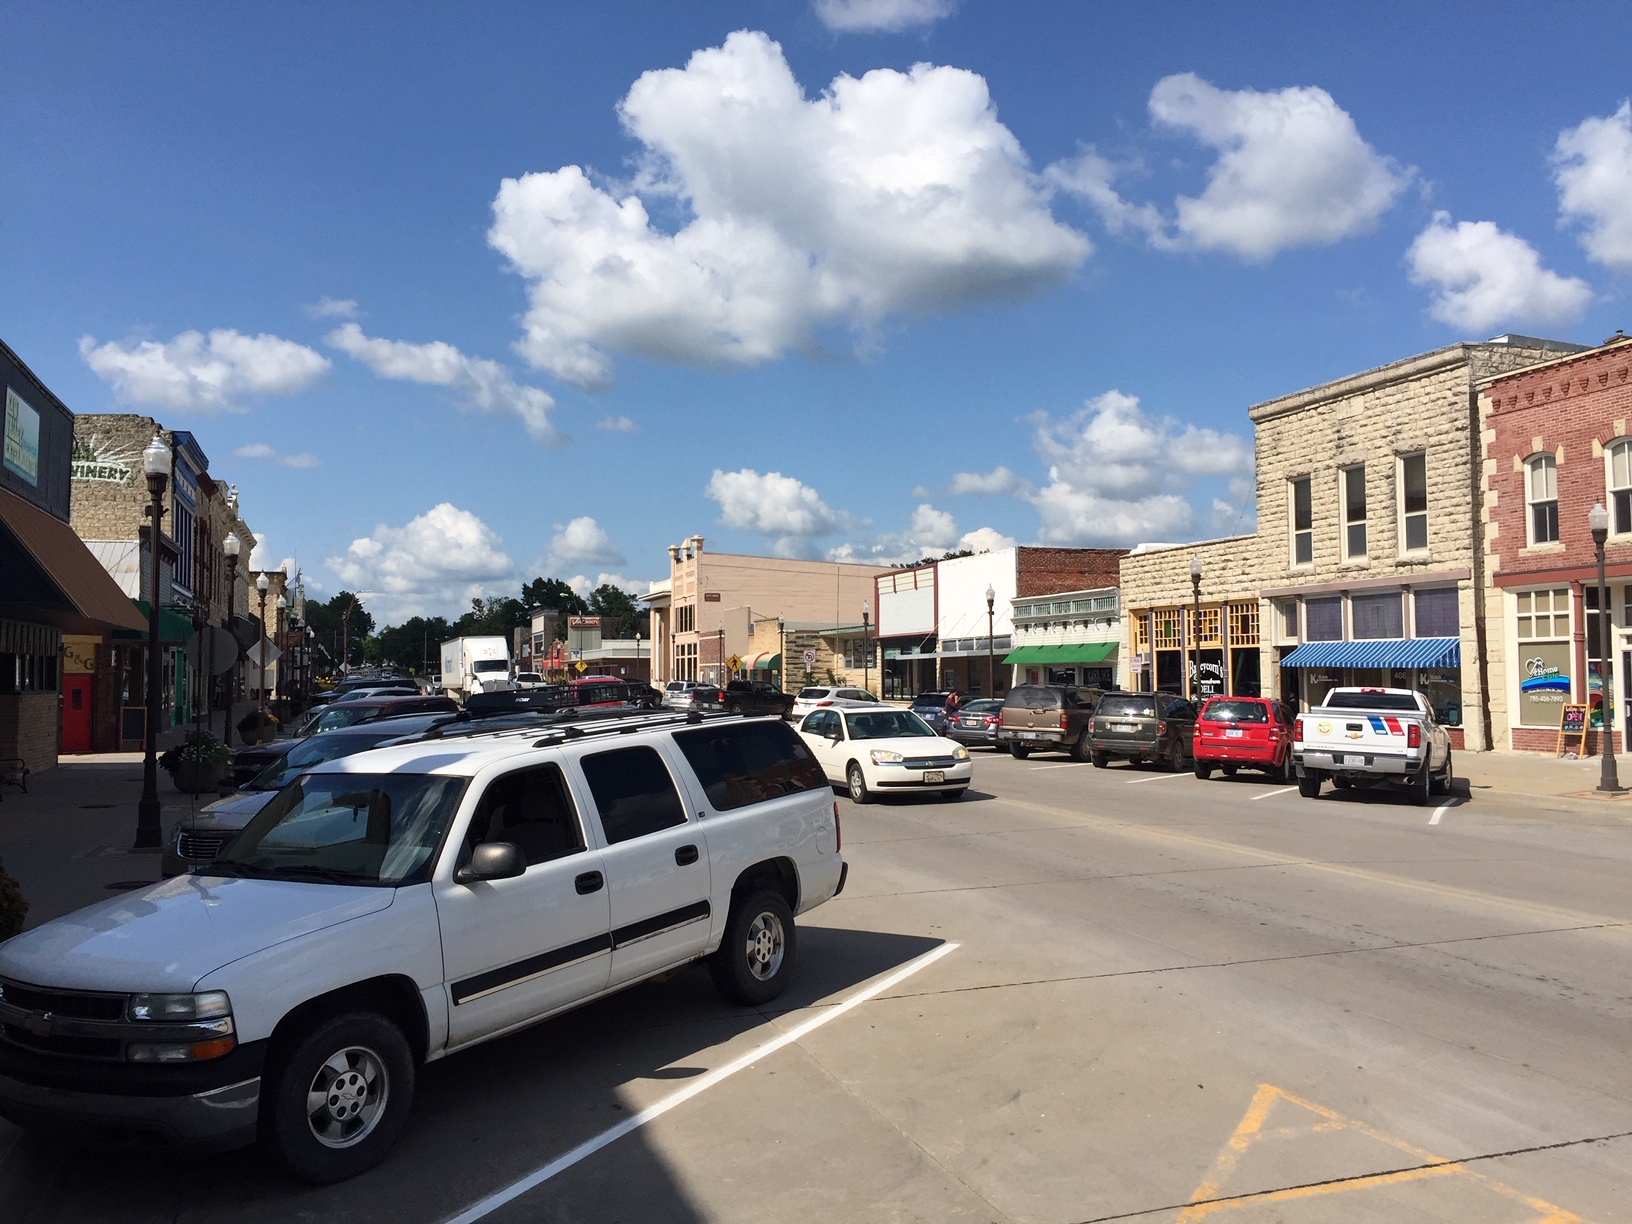 Snapshot of downtown Wamego on a hot August day. (Photo by J. Schafer)